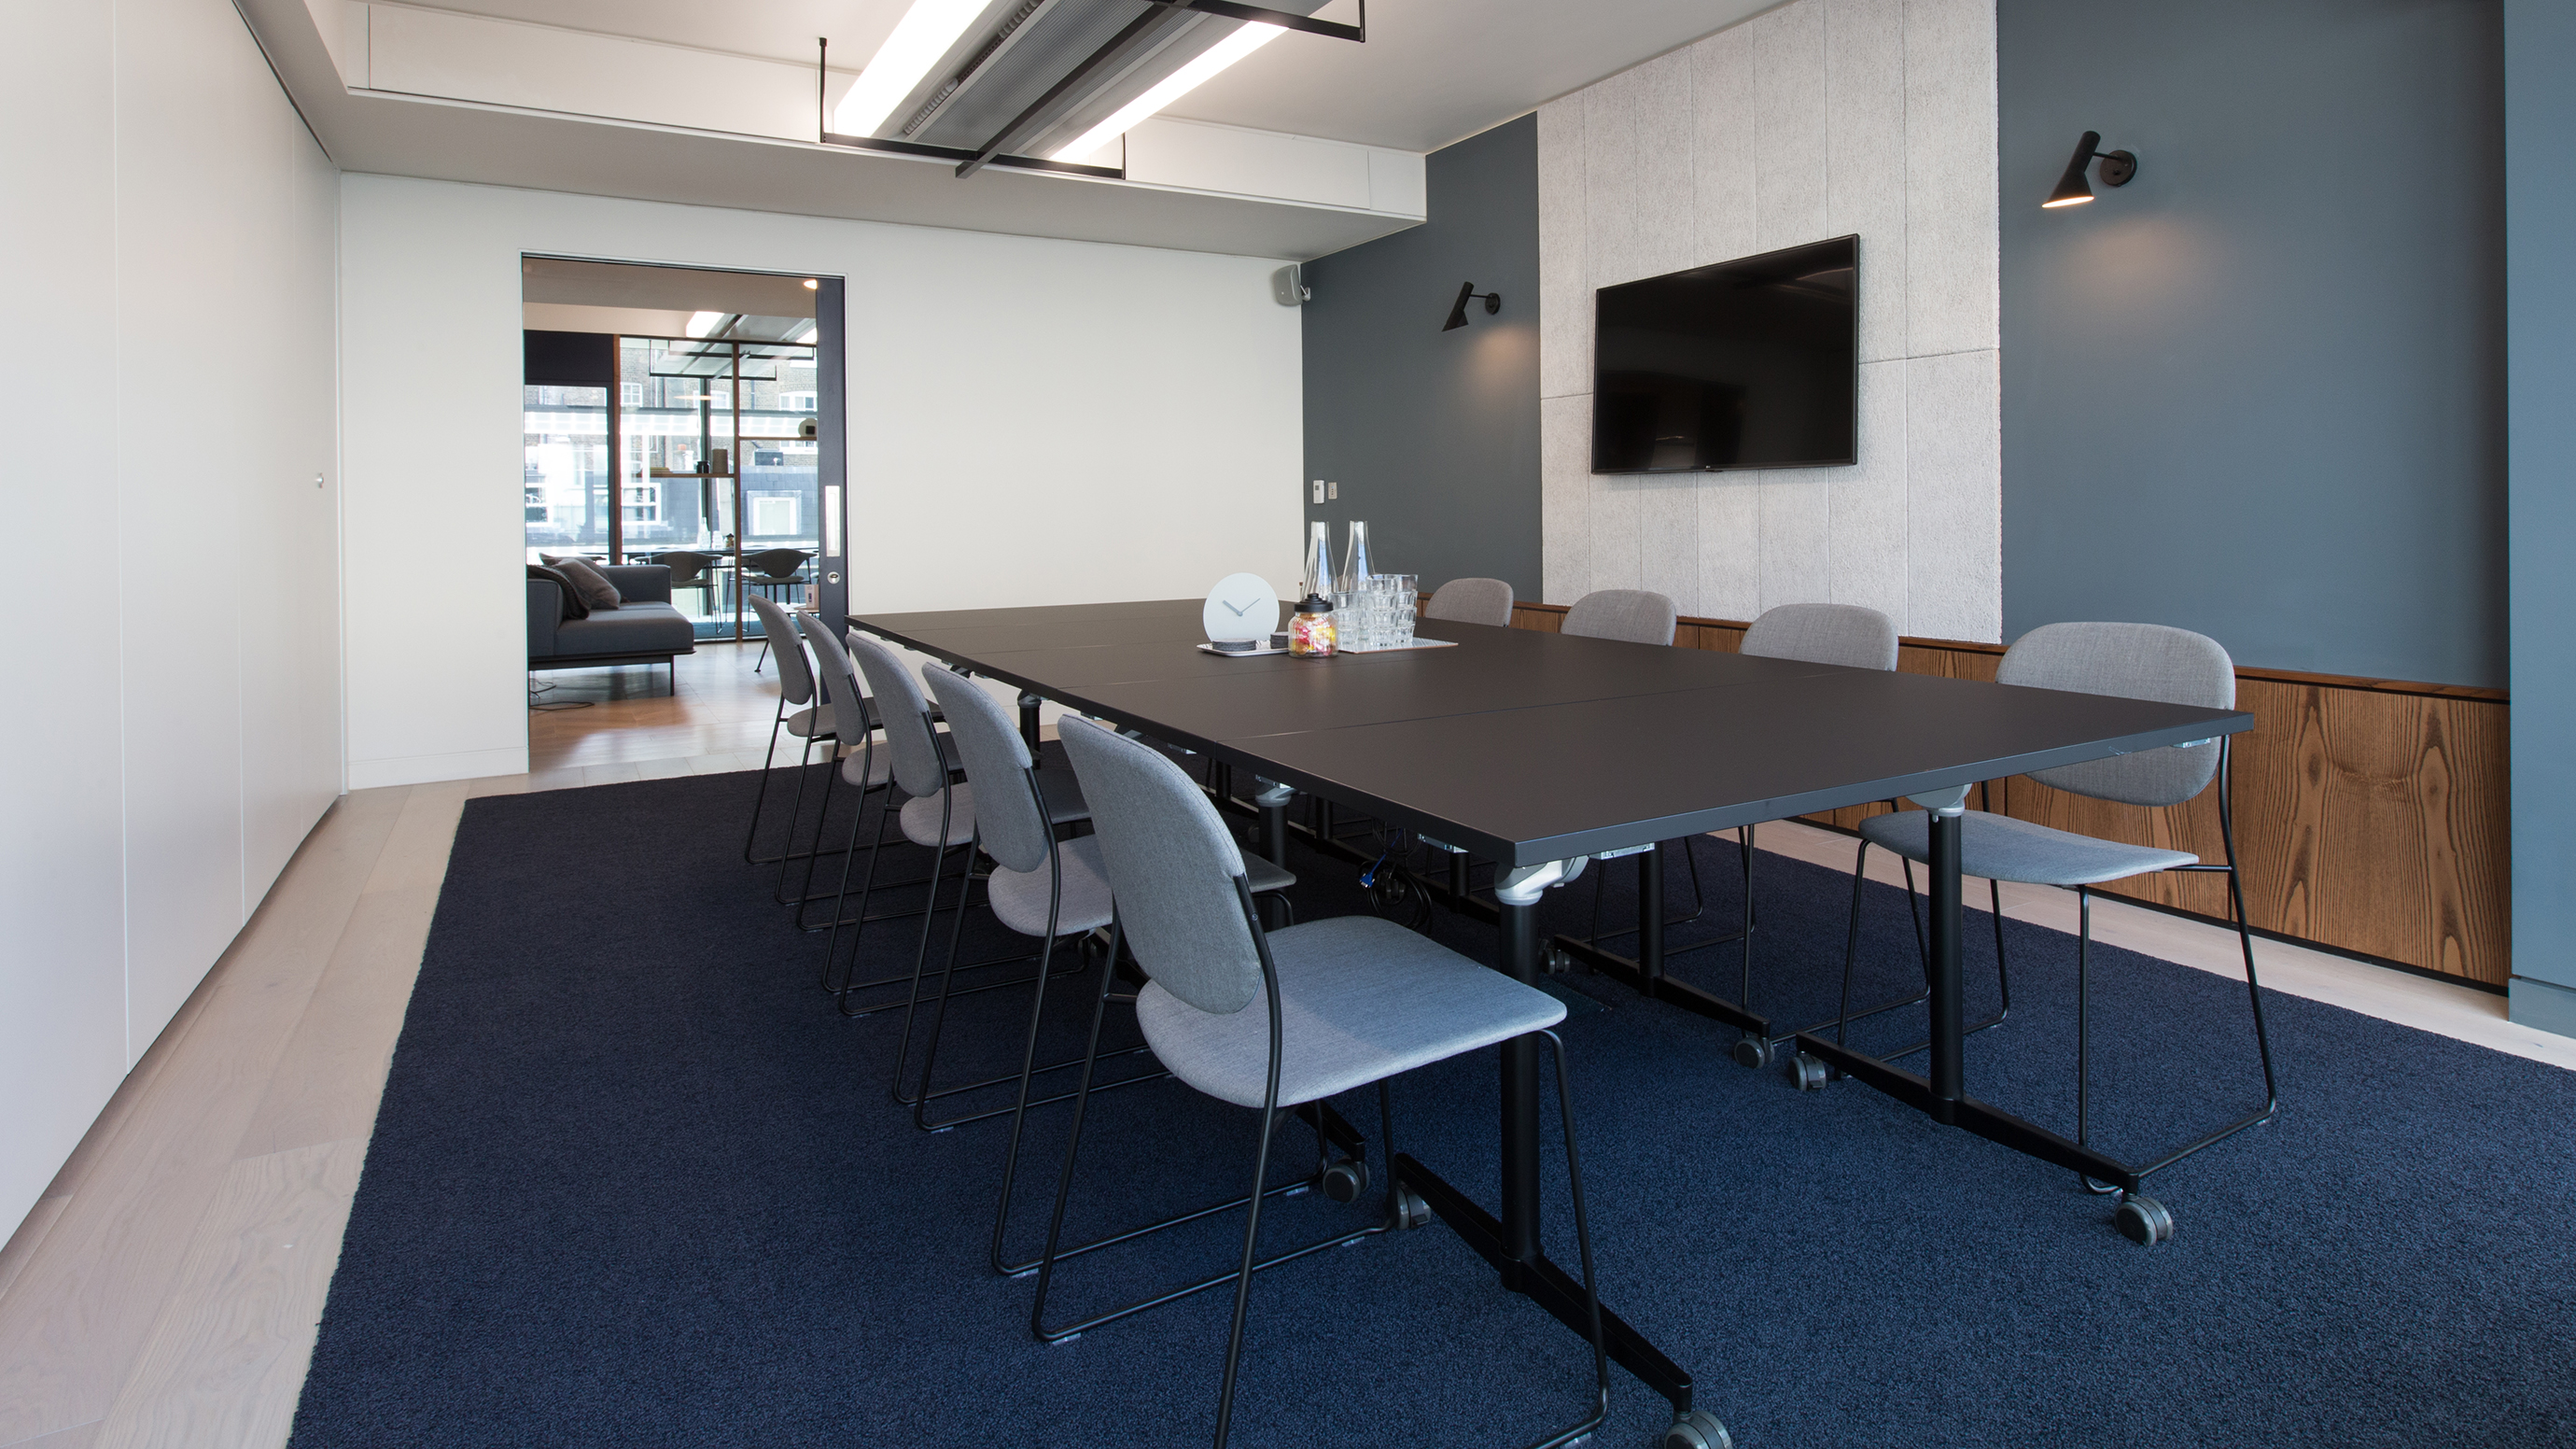 Medium meeting room with black rectangular table and grey chairs and tv screen at TOG building 20 Eastbourne Terrace London